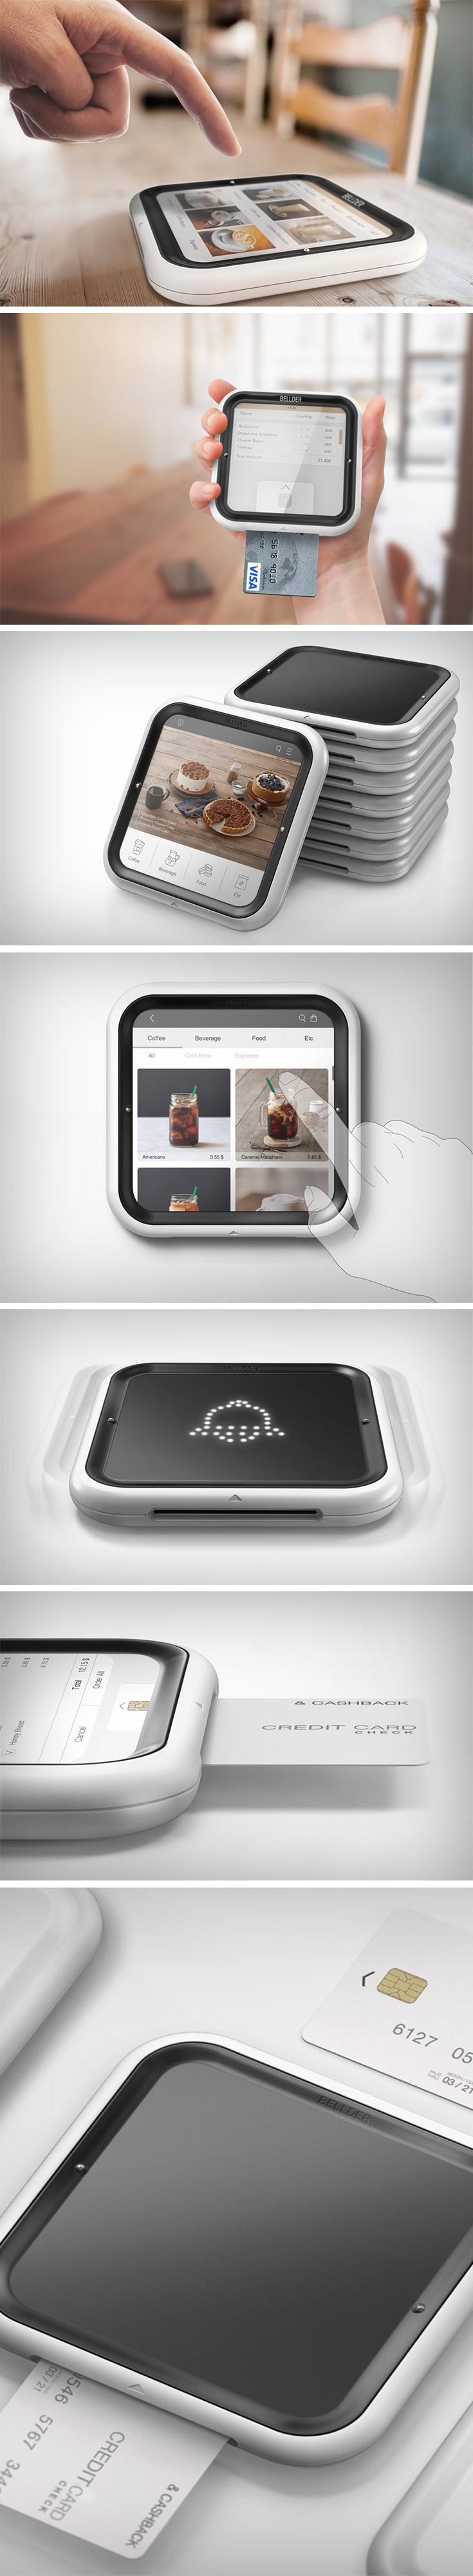 With the rising trend of automated restaurants where people literally have to interact with no one, comes the need to have technology and design back that scenario. Enter the Bellder, a tablet that takes care of everything for you from ordering, to notifying, to acting as a payment gateway. Each patron entering the restaurant gets handed a Bellder. Its design is sleek enough to seem appealing but bulky enough to not get stolen, or break.